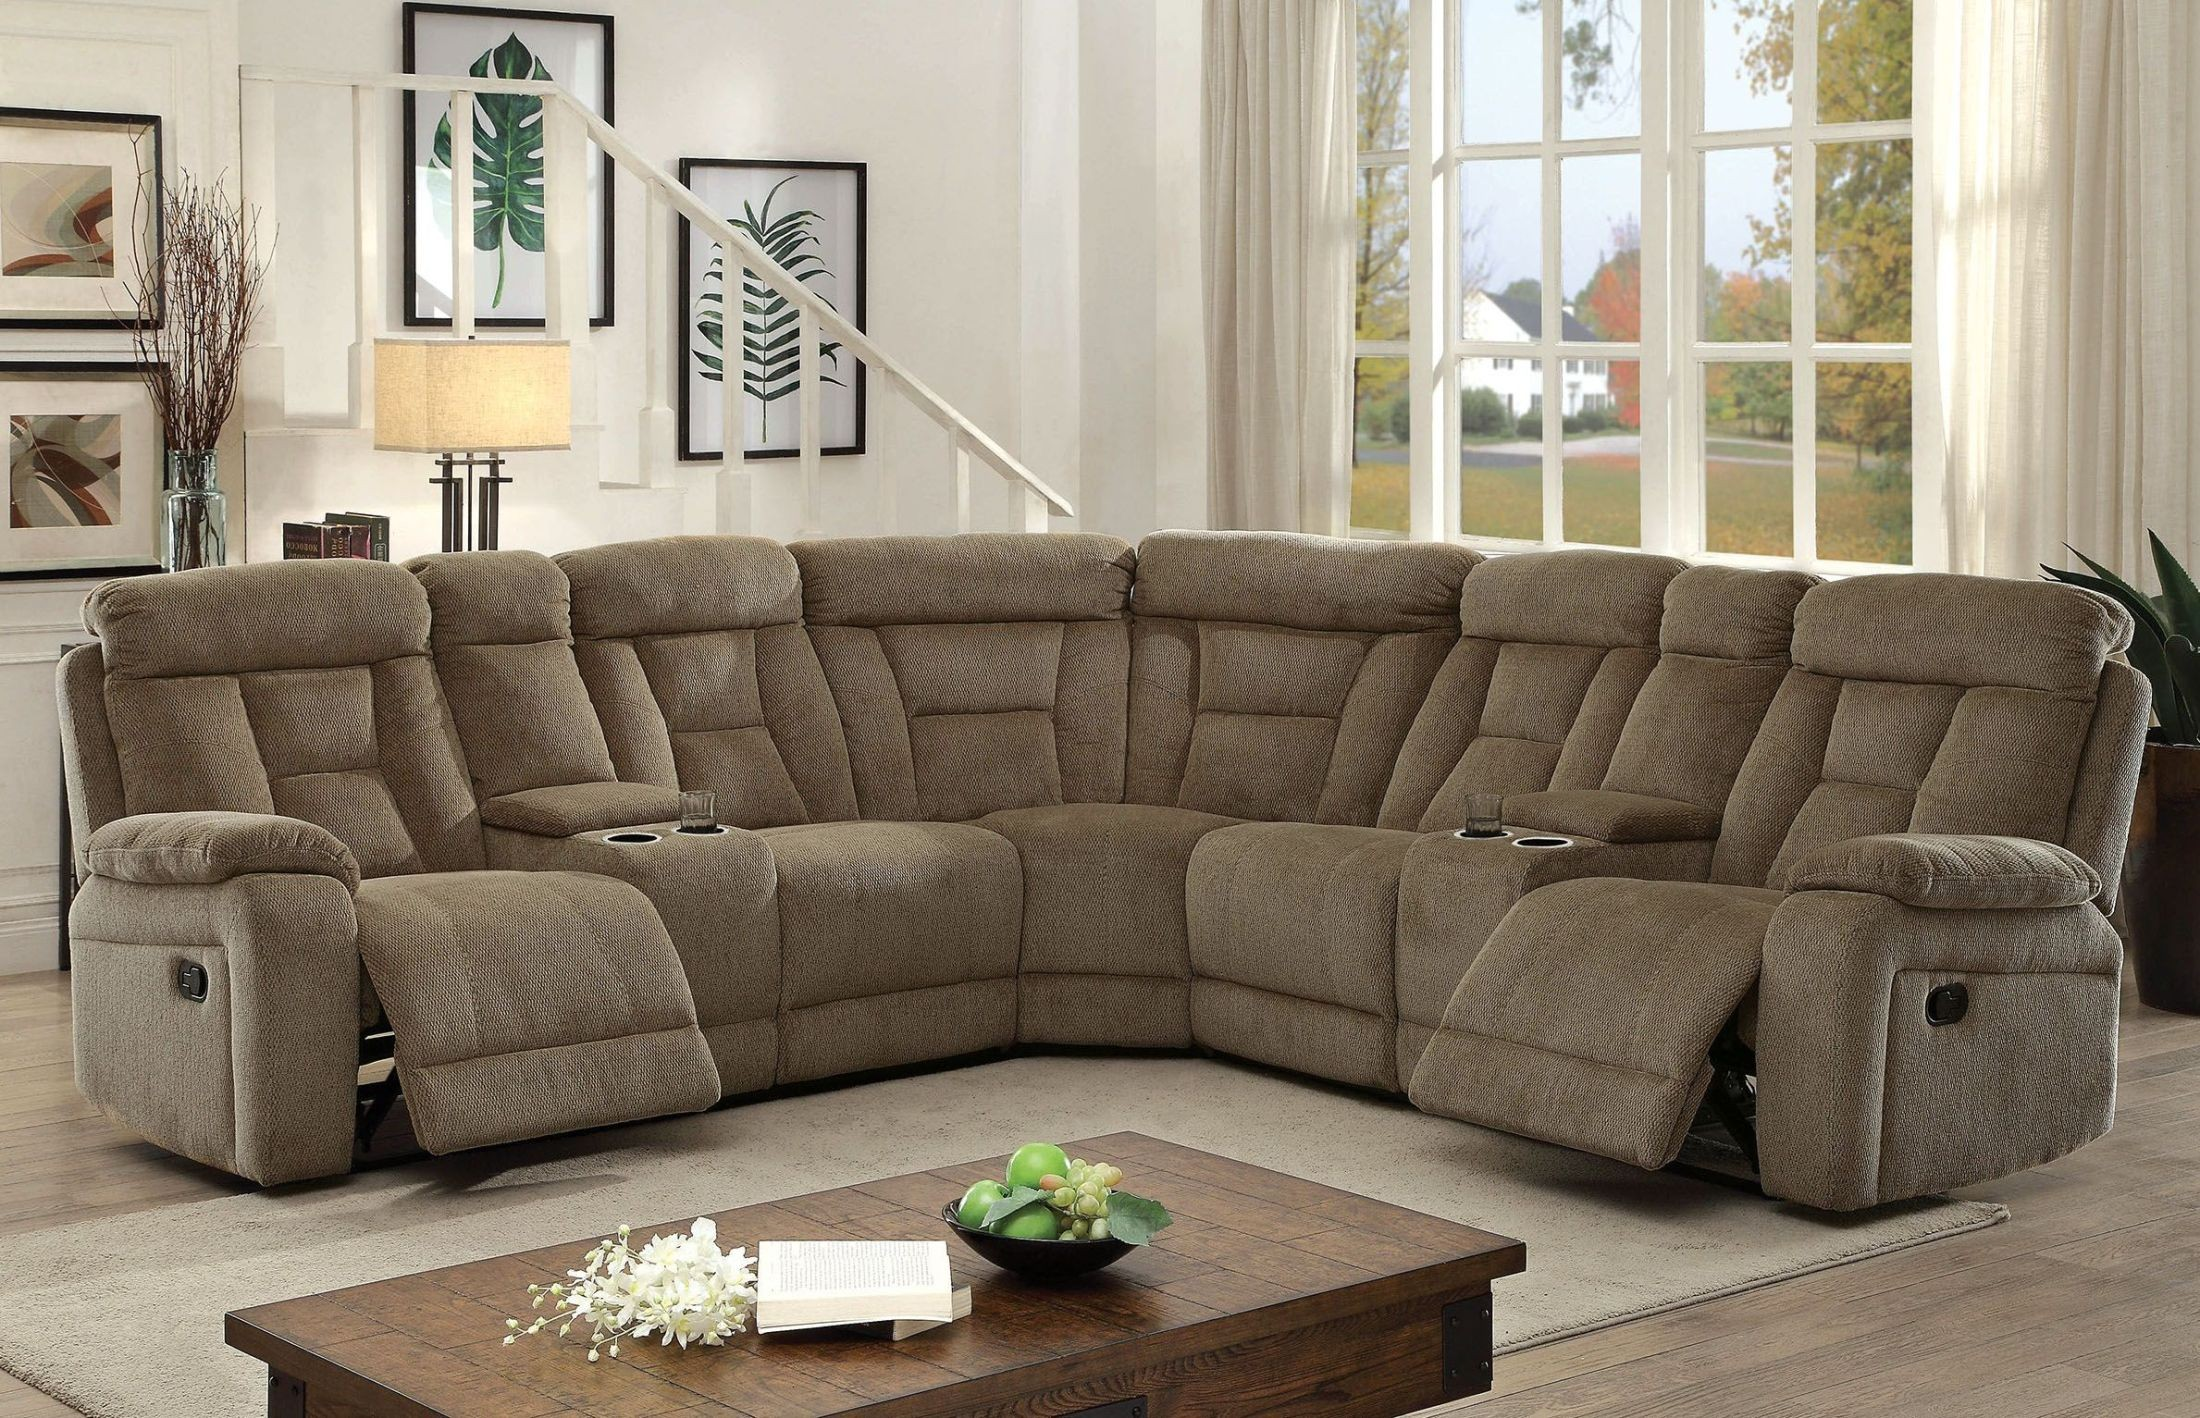 Maybell Mocha Recliner Sectional, CM6773MC-SECTIONAL ...